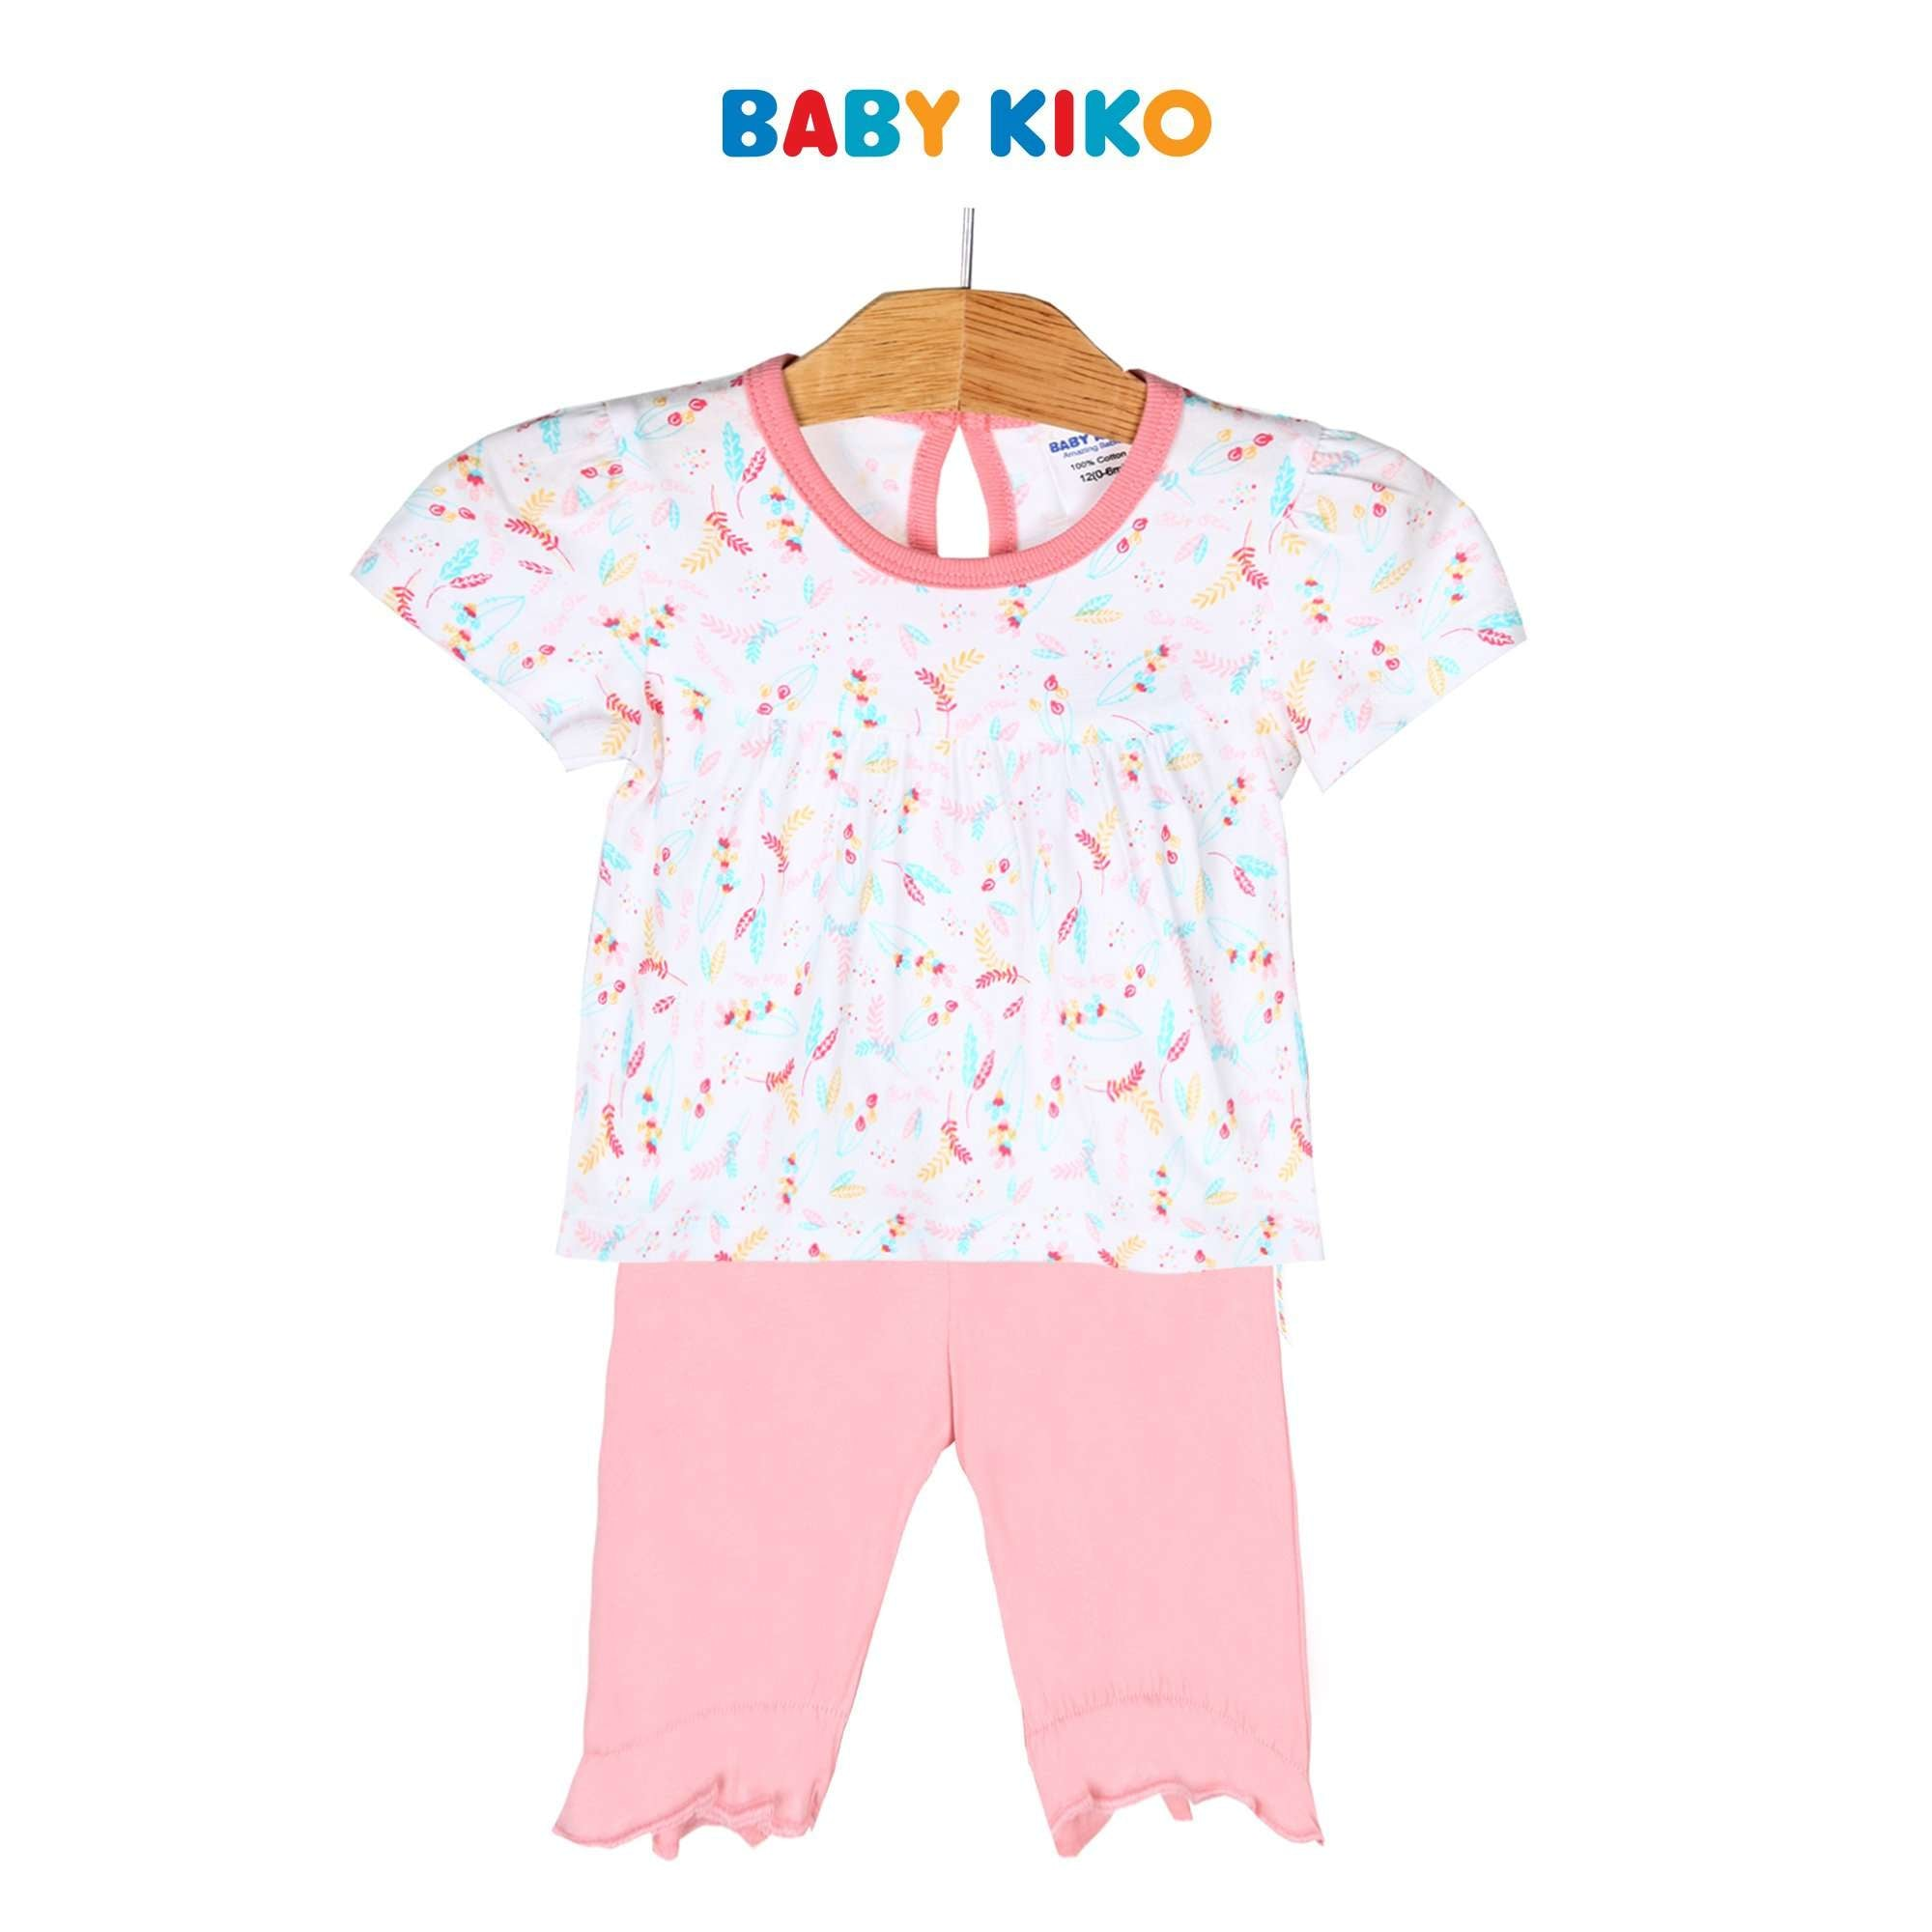 Baby KIKO Baby Girl Short Sleeve Bermuda Suit 320177-411 : Buy Baby KIKO online at CMG.MY